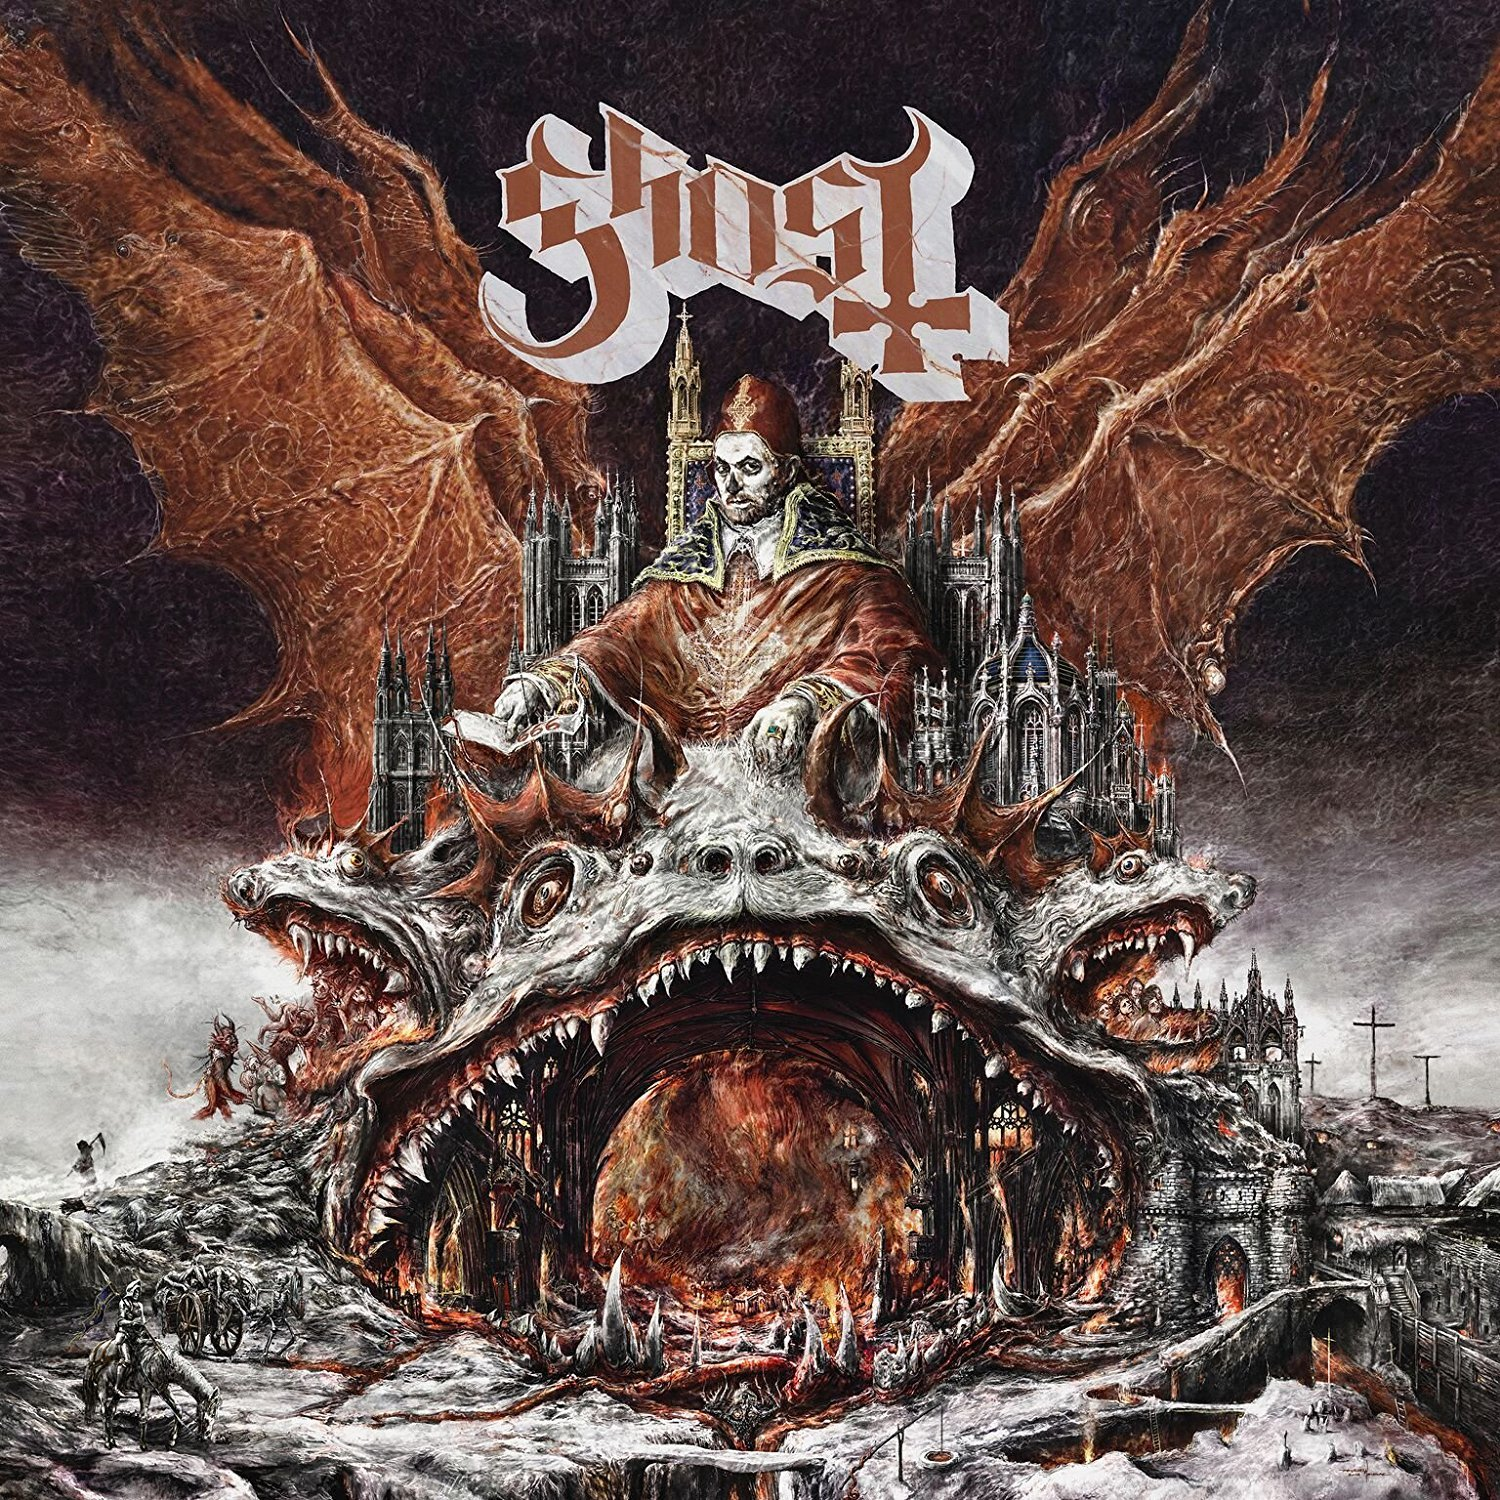 Ghost - Prequelle by Ghost image